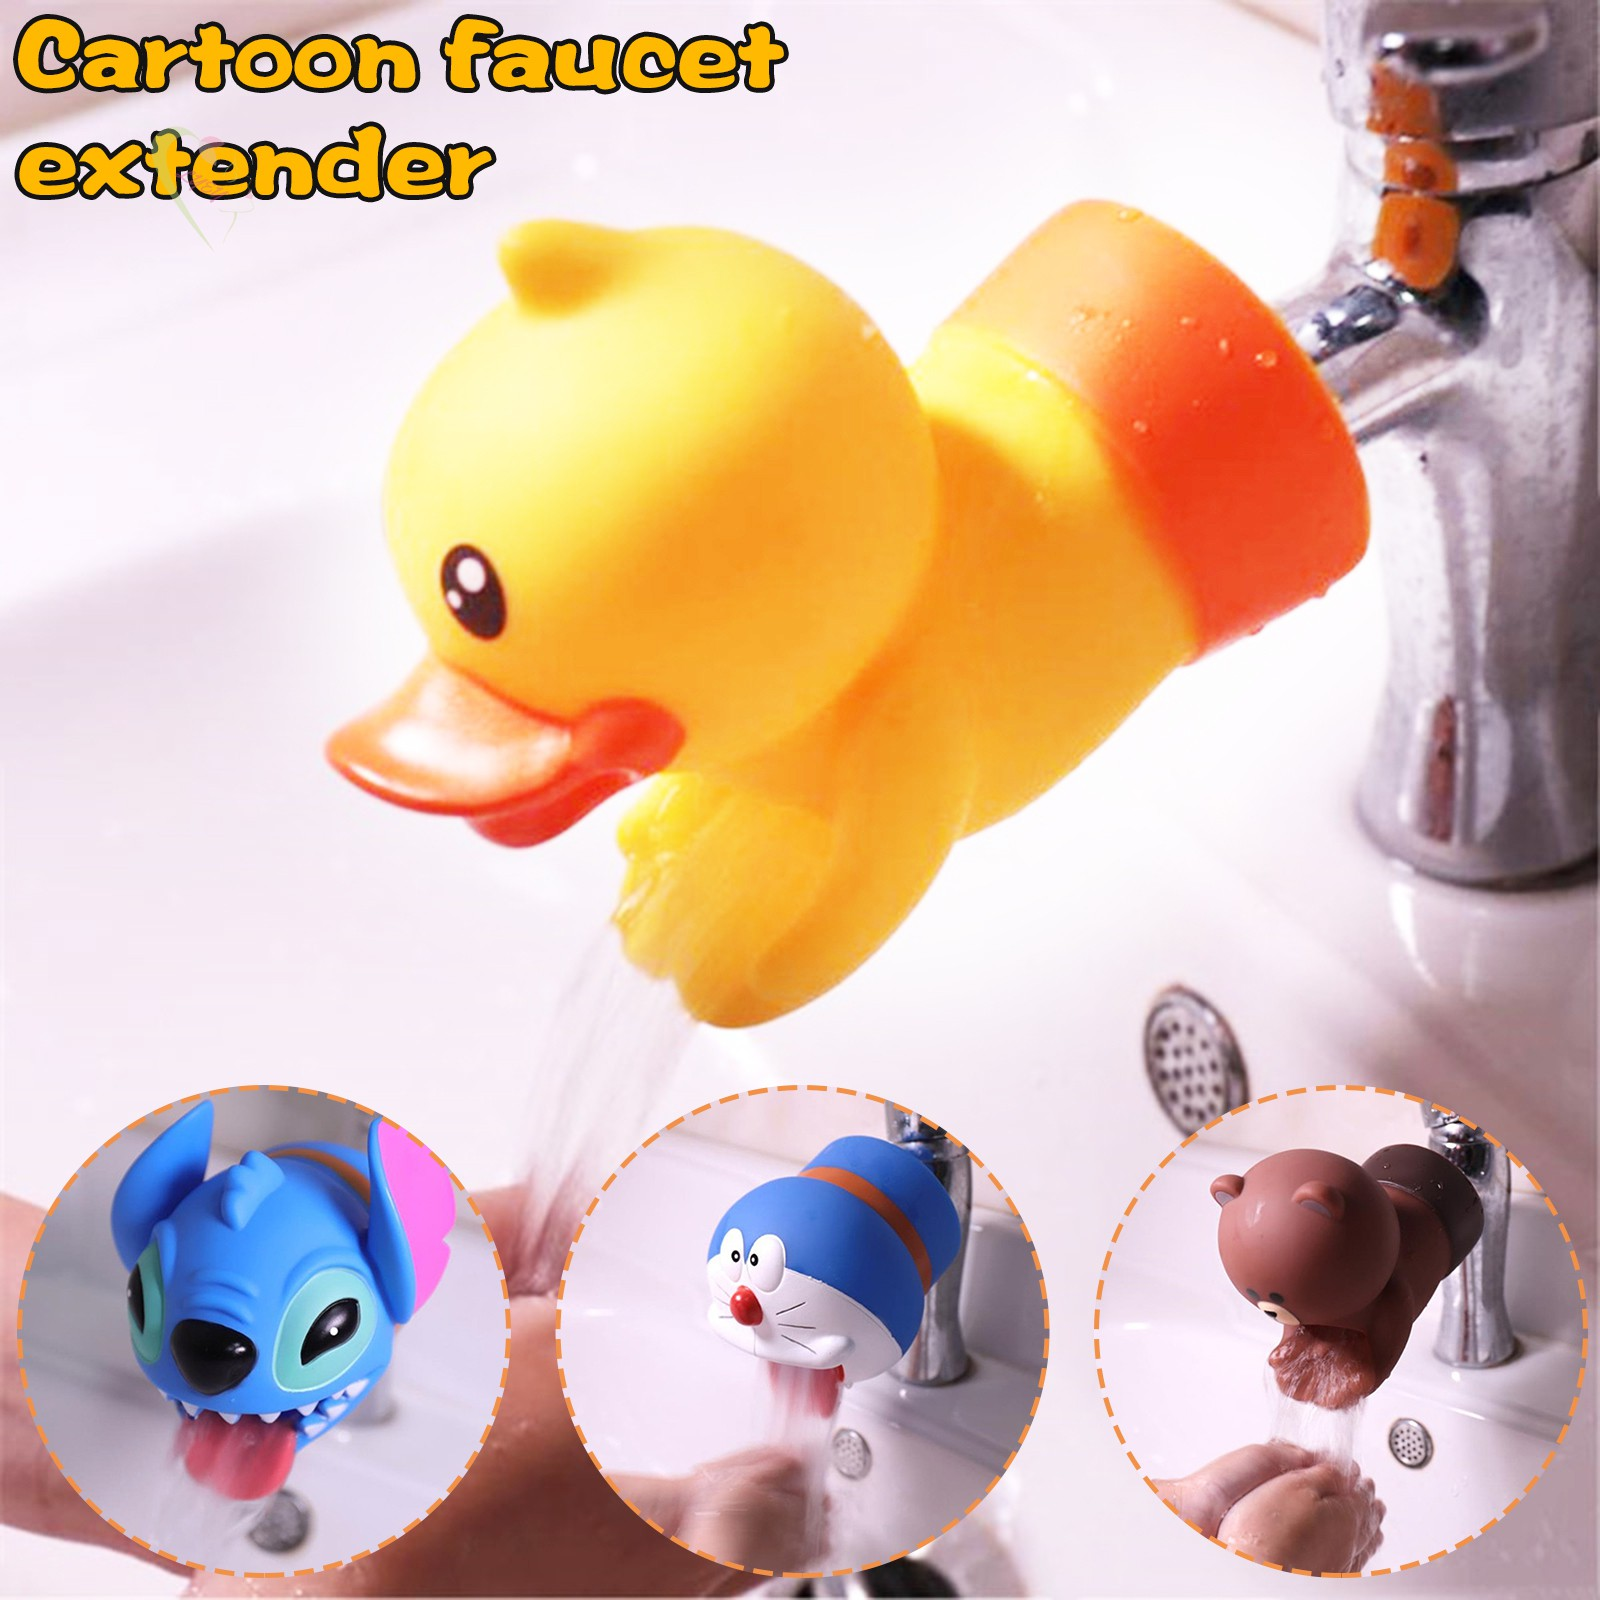 LE Cute Cartoon Shape Faucet Extender Water Saving Faucet Extension Tool For Kids Bathroom and Kitchen Supplies @VN